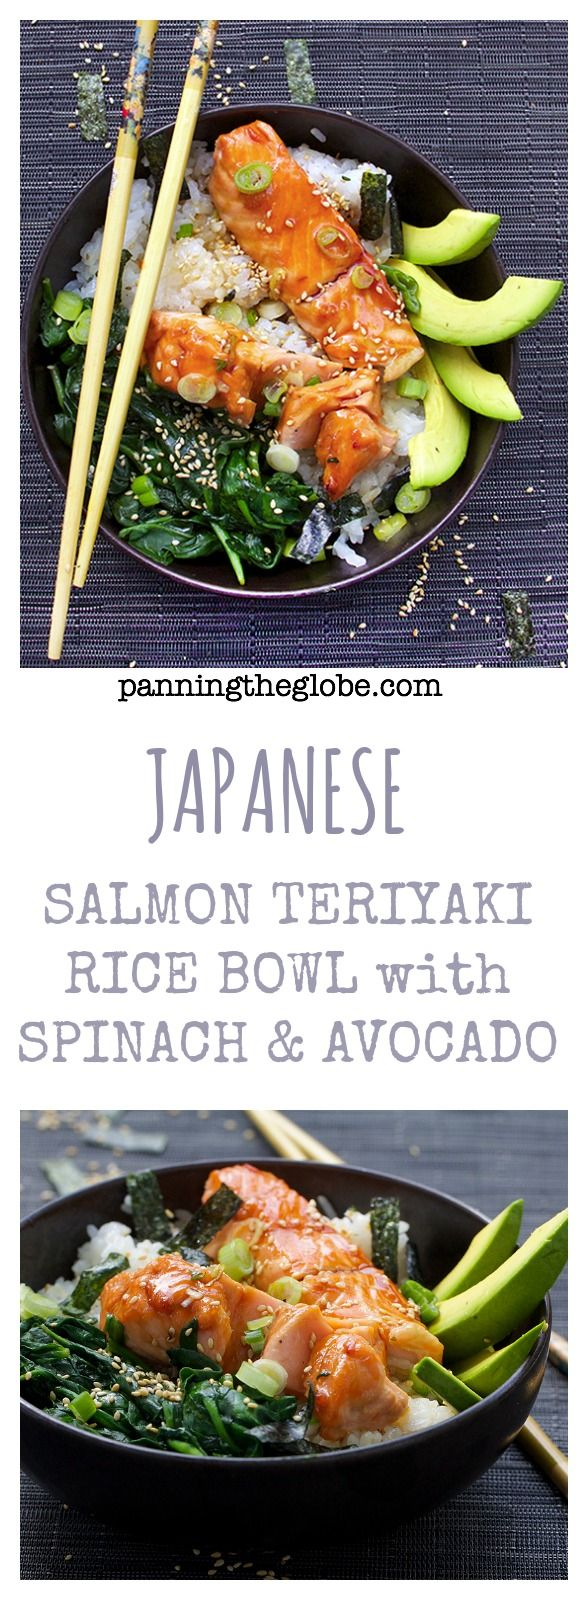 Teriyaki Salmon Rice Bowl recipe: A whole healthy delicious meal in a bowl - Salmon, spinach, sushi rice and teriyaki sauce - garnished with avocado and sesame-nori confetti. Gets rave reviews!